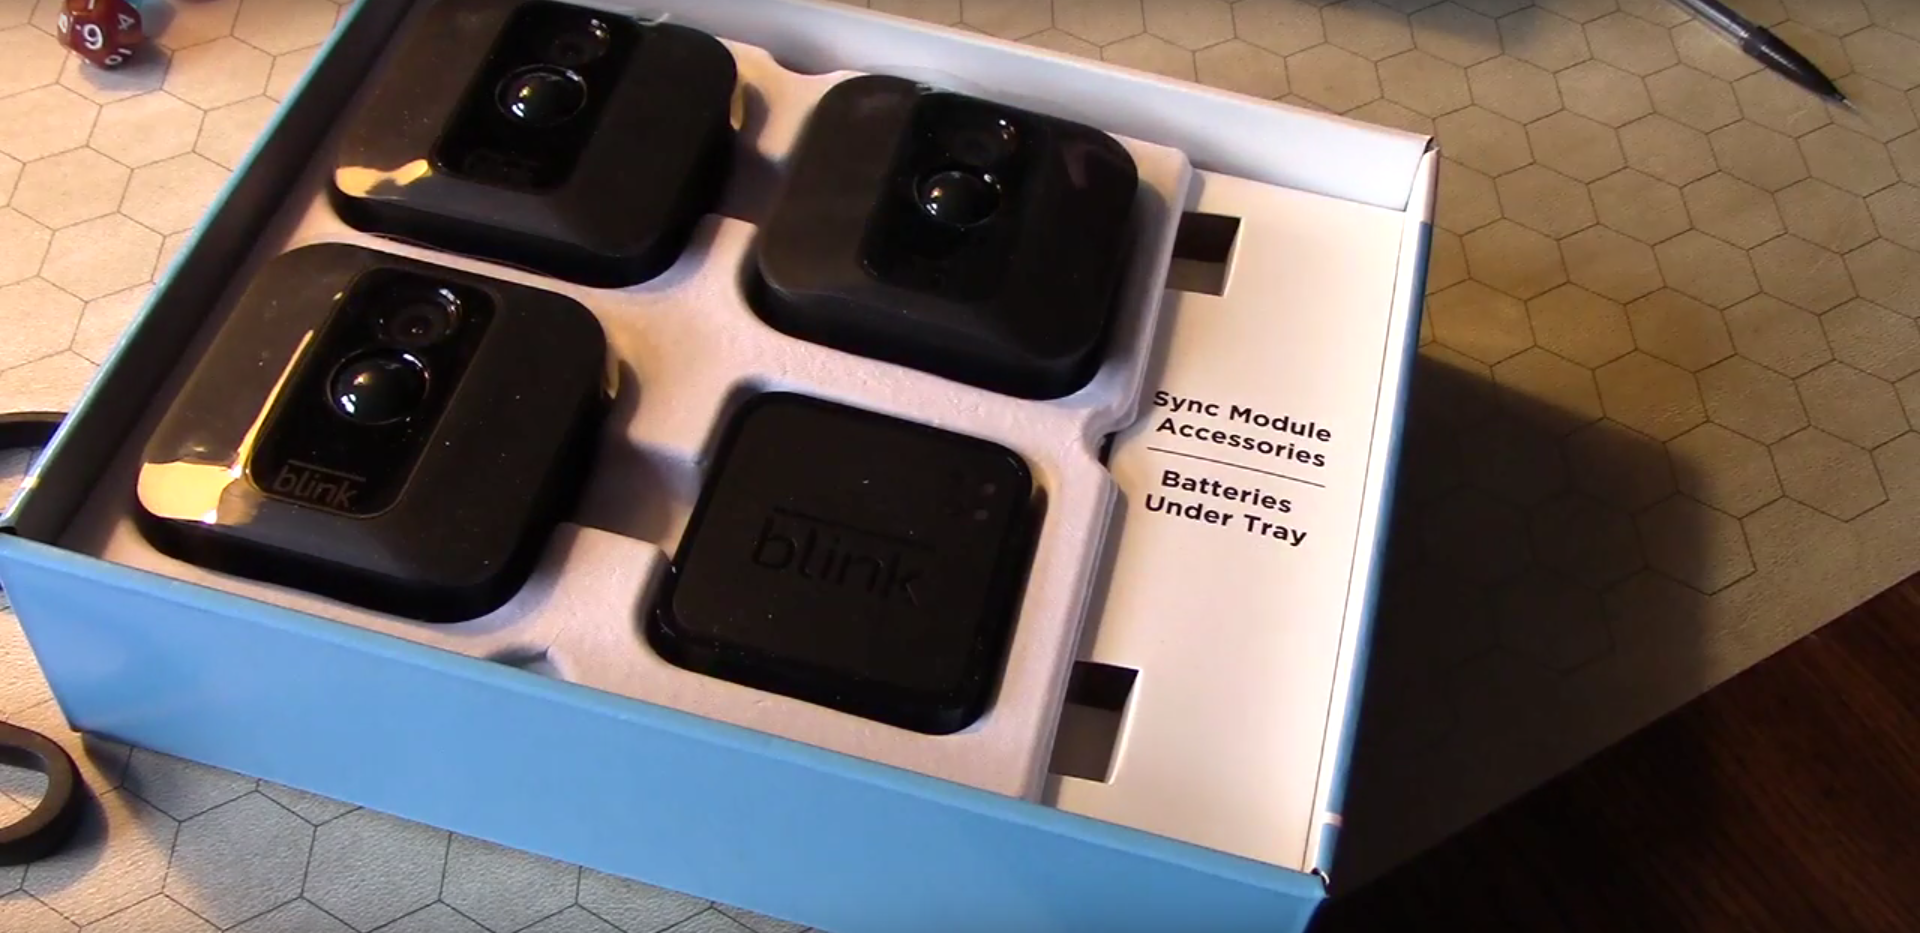 Blink Xt Home Security System Review Snap Goods